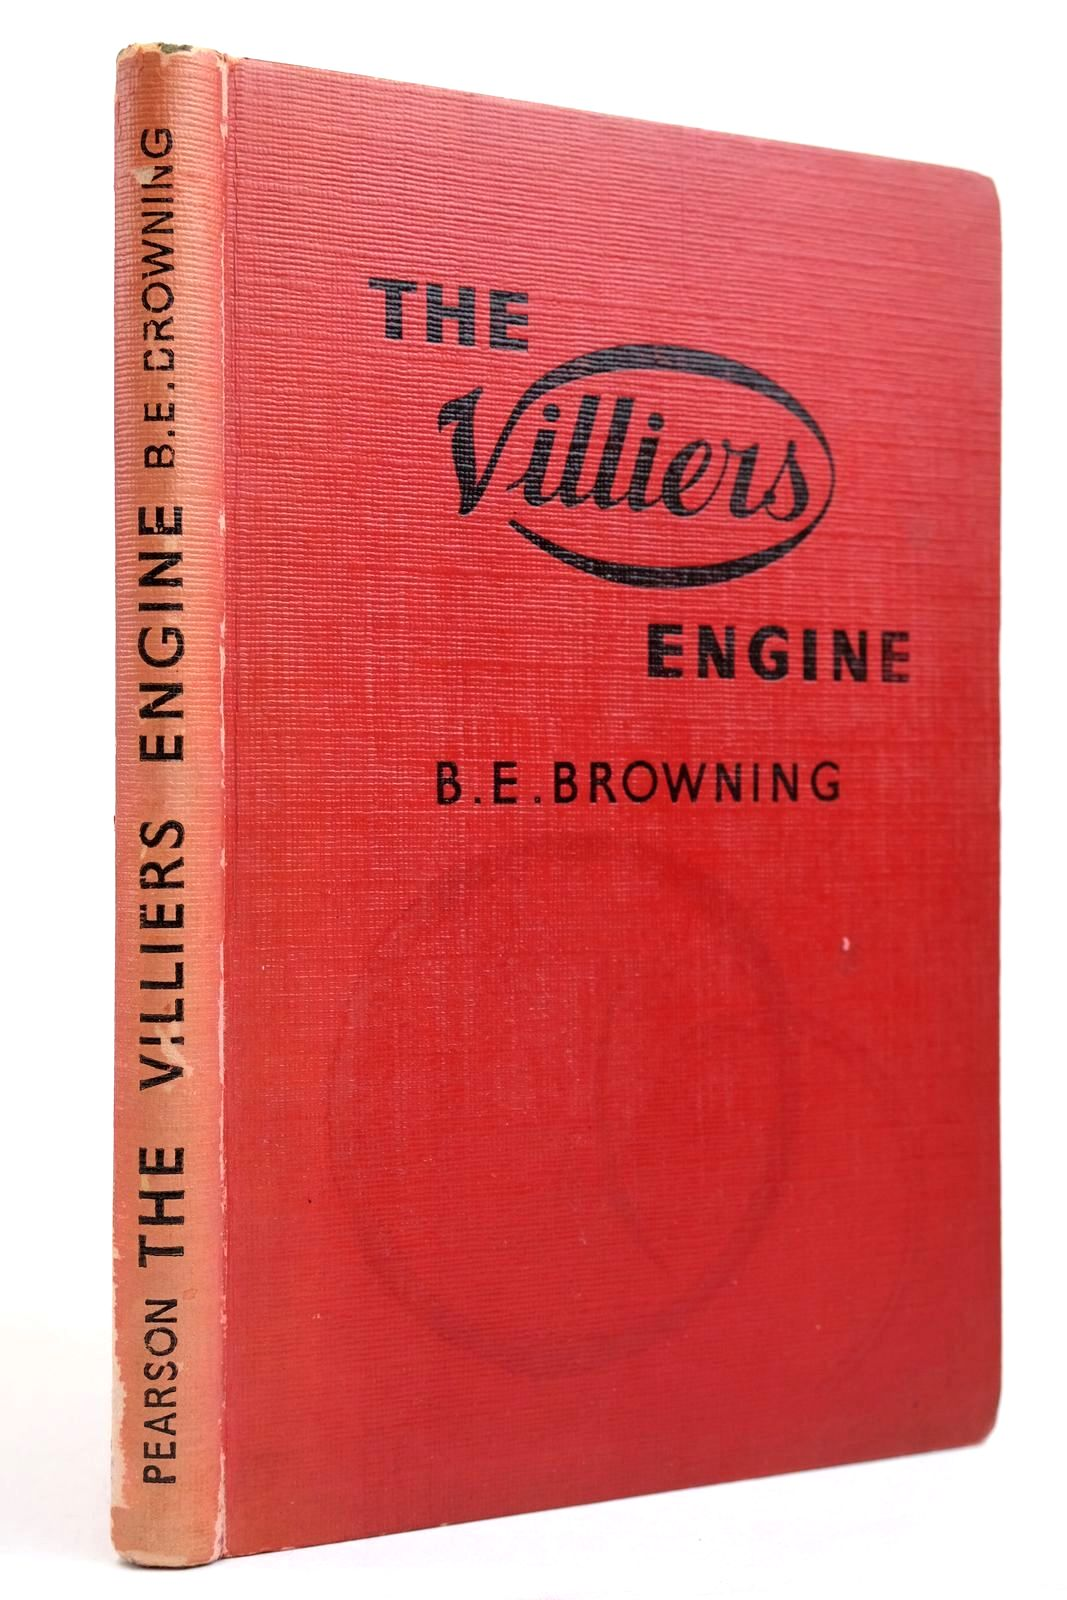 Photo of THE VILLIERS ENGINE written by Browning, B.E. published by C. Arthur Pearson Ltd. (STOCK CODE: 2134347)  for sale by Stella & Rose's Books